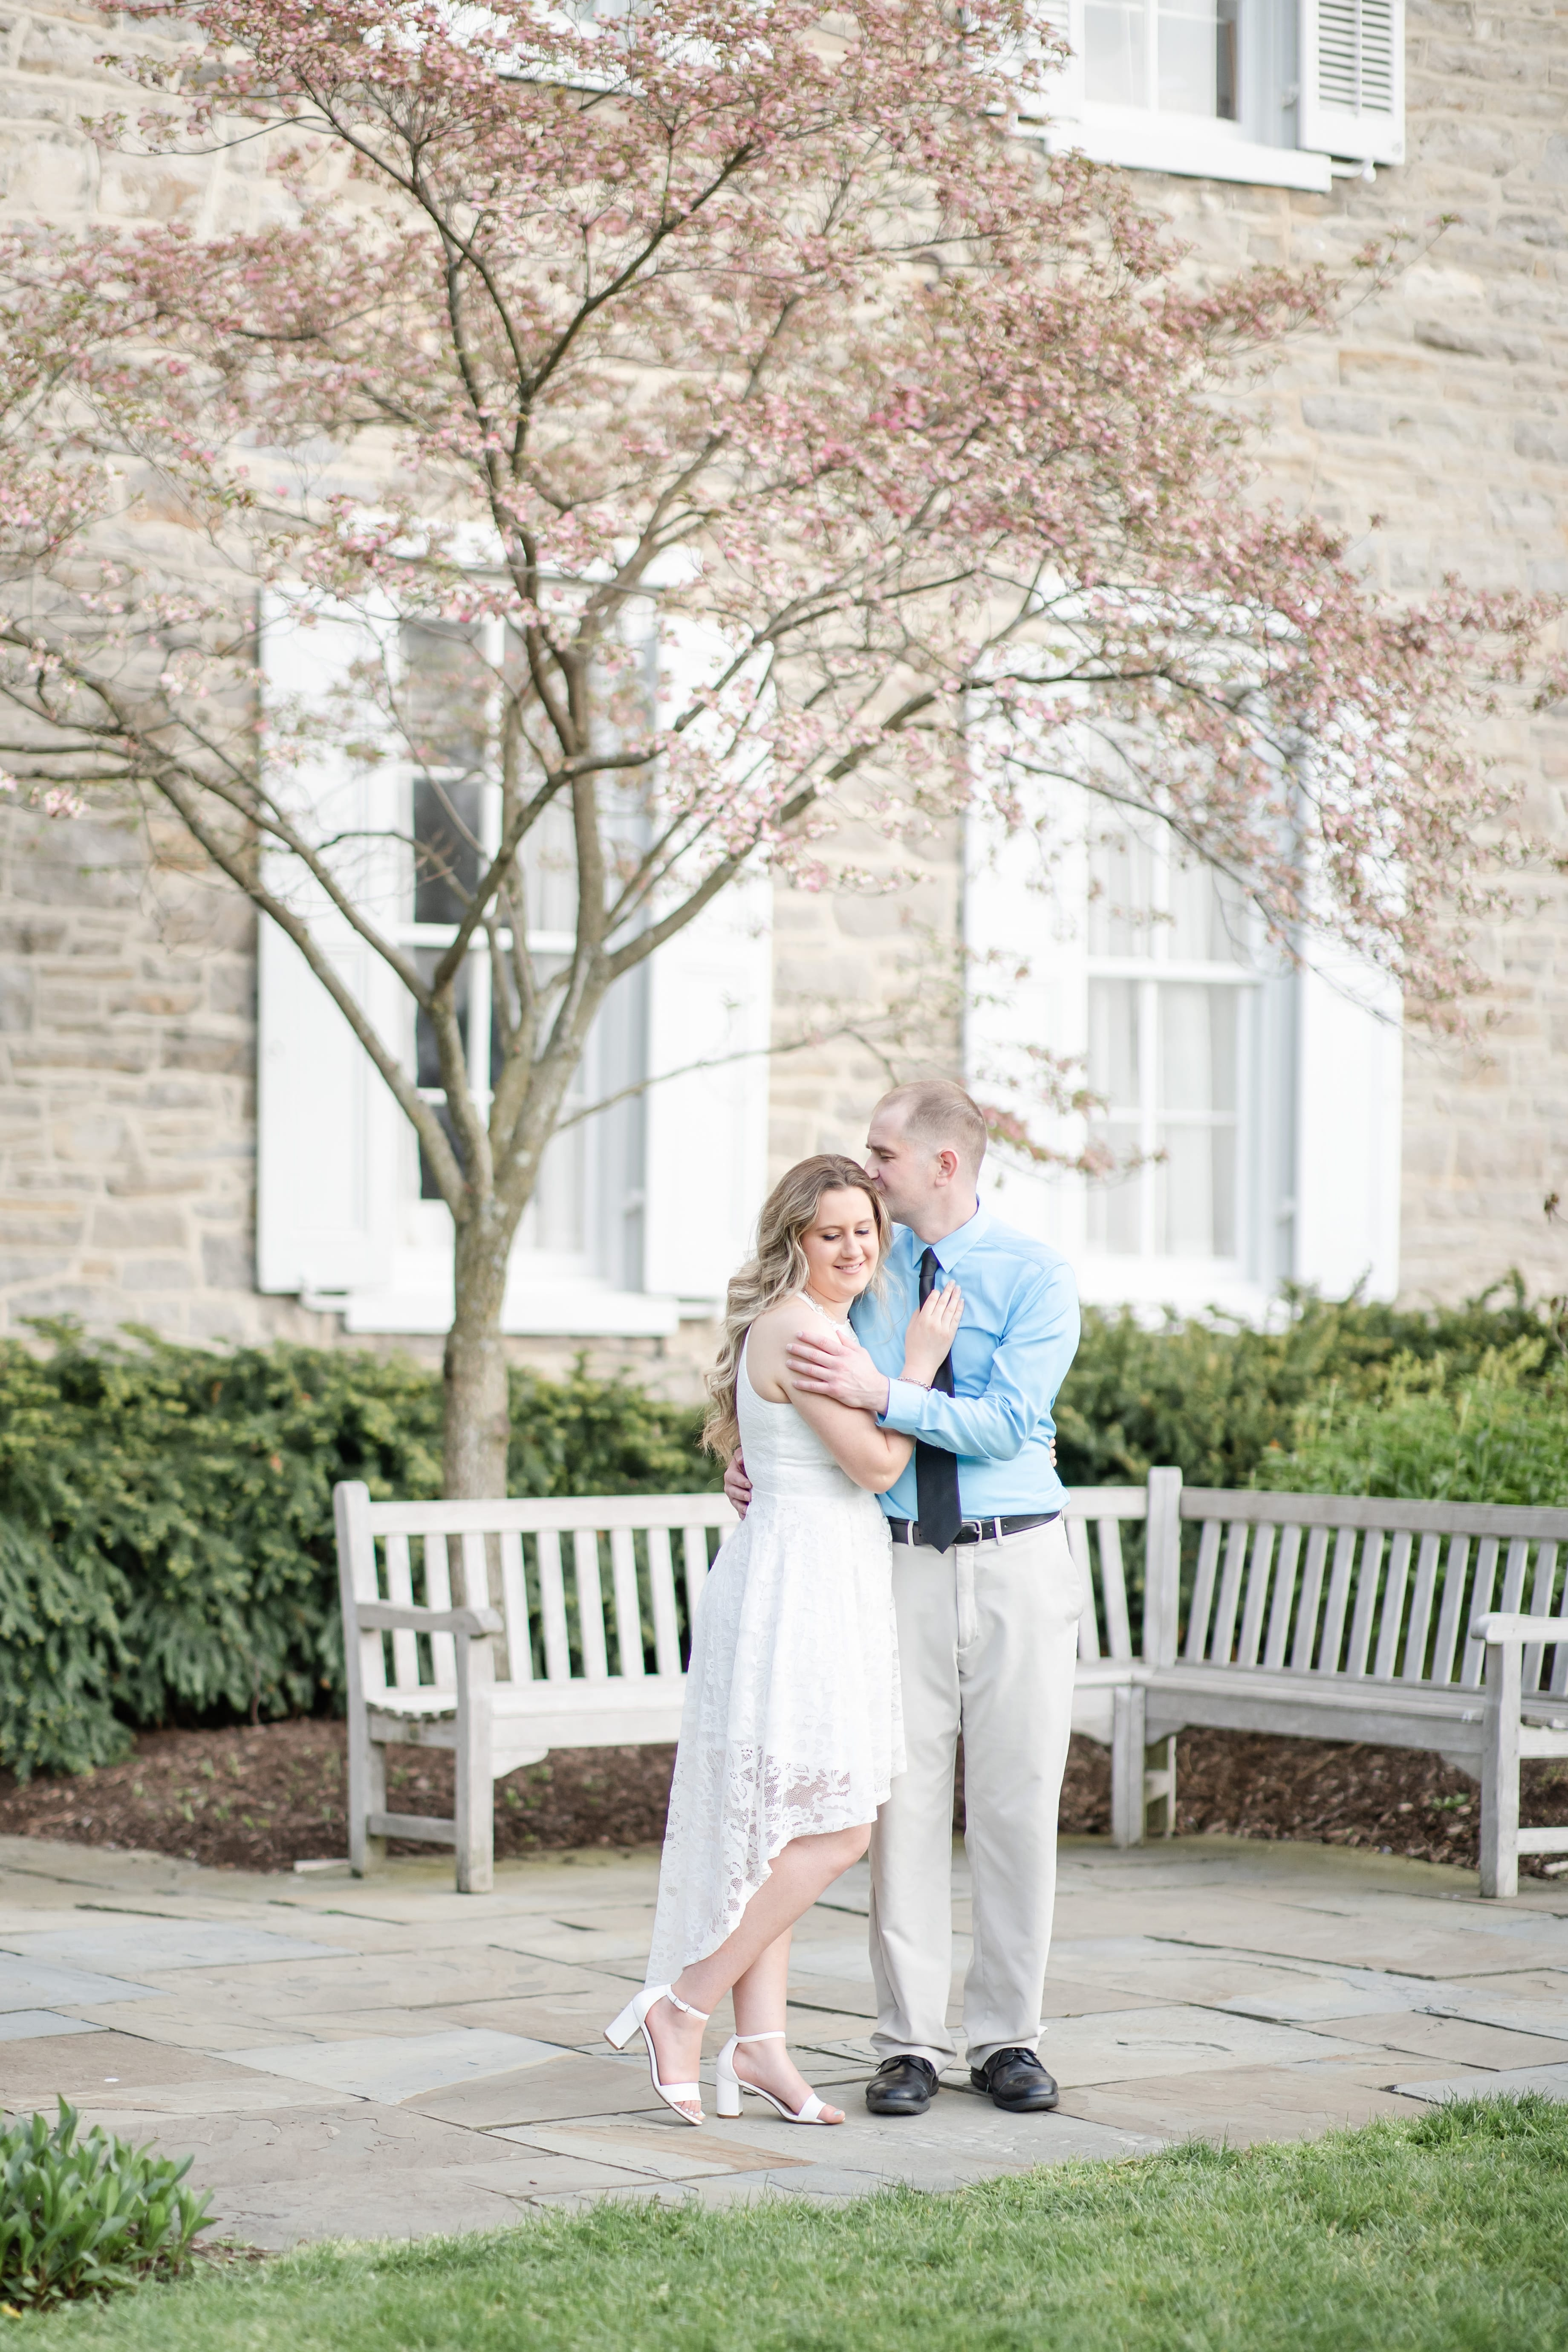 Engagement photo at Penn State Hintz Alumni Garden with flowering tree